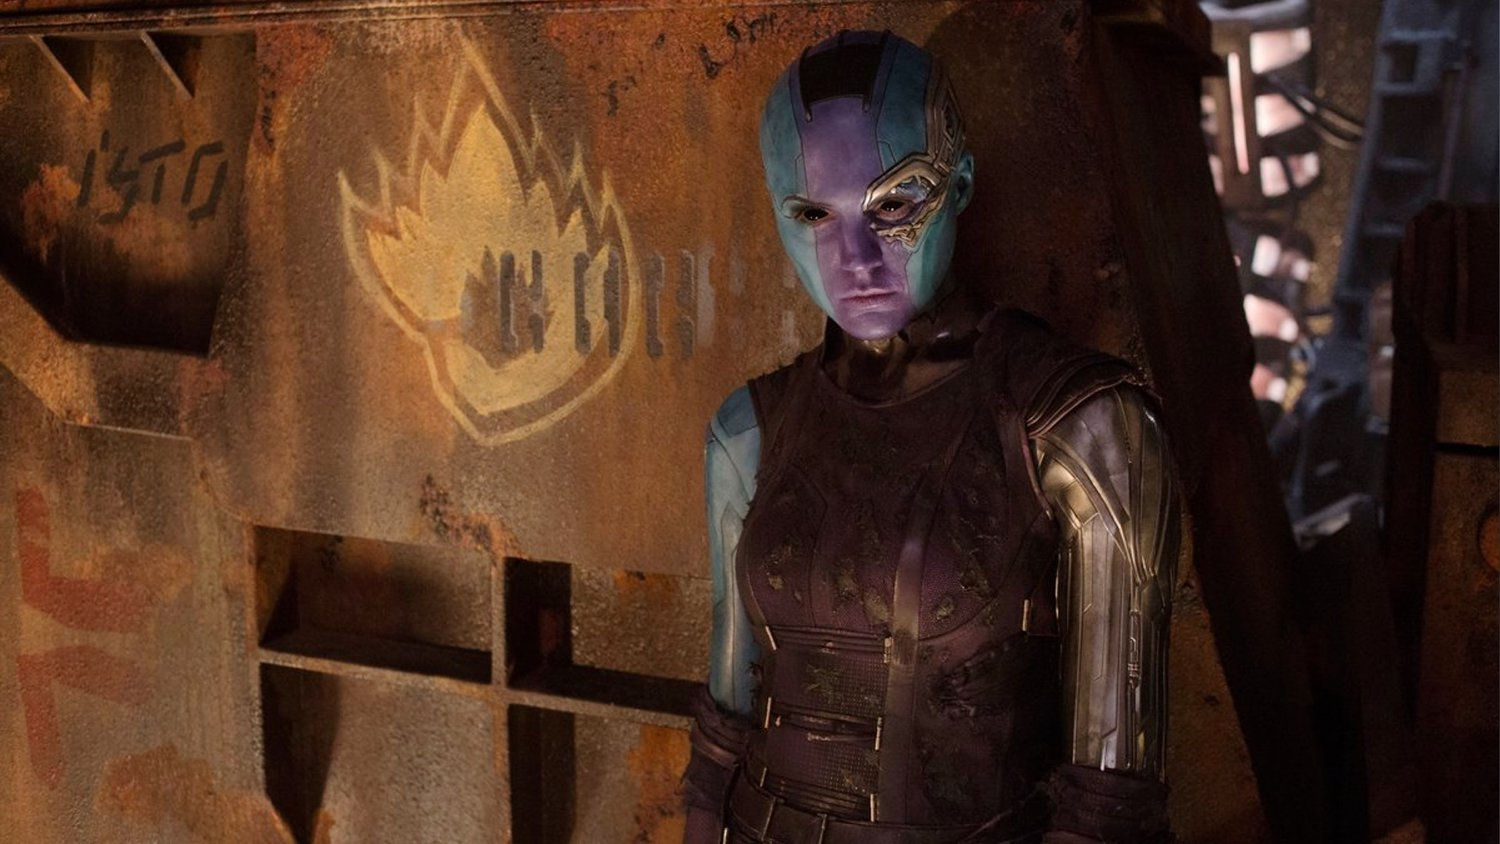 New GUARDIANS OF THE GALAXY VOL. 2 Spot Focuses on Gamora and Nebula's Sibling Rivalry